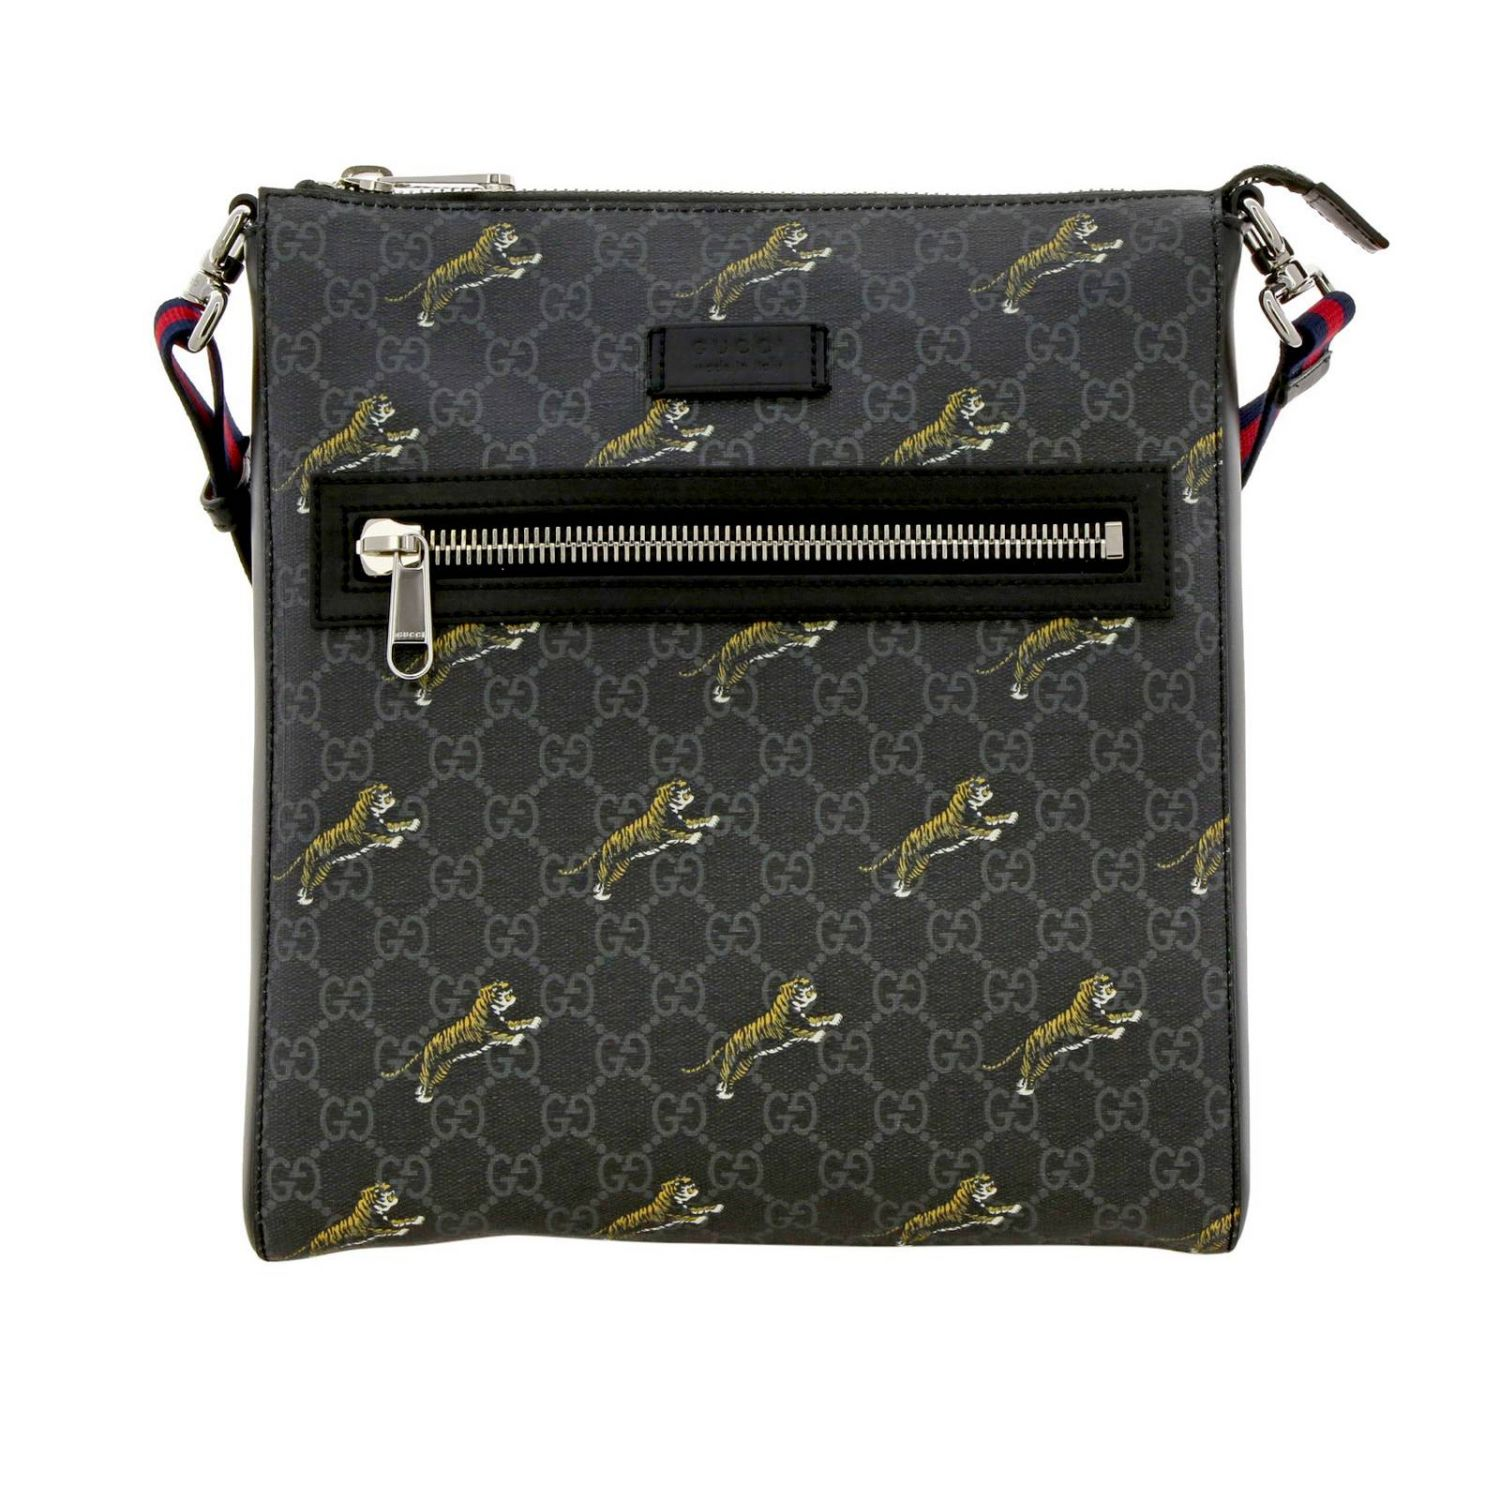 Borsello in pelle con stampa tigre all over e monogramma GG Gucci nero 1